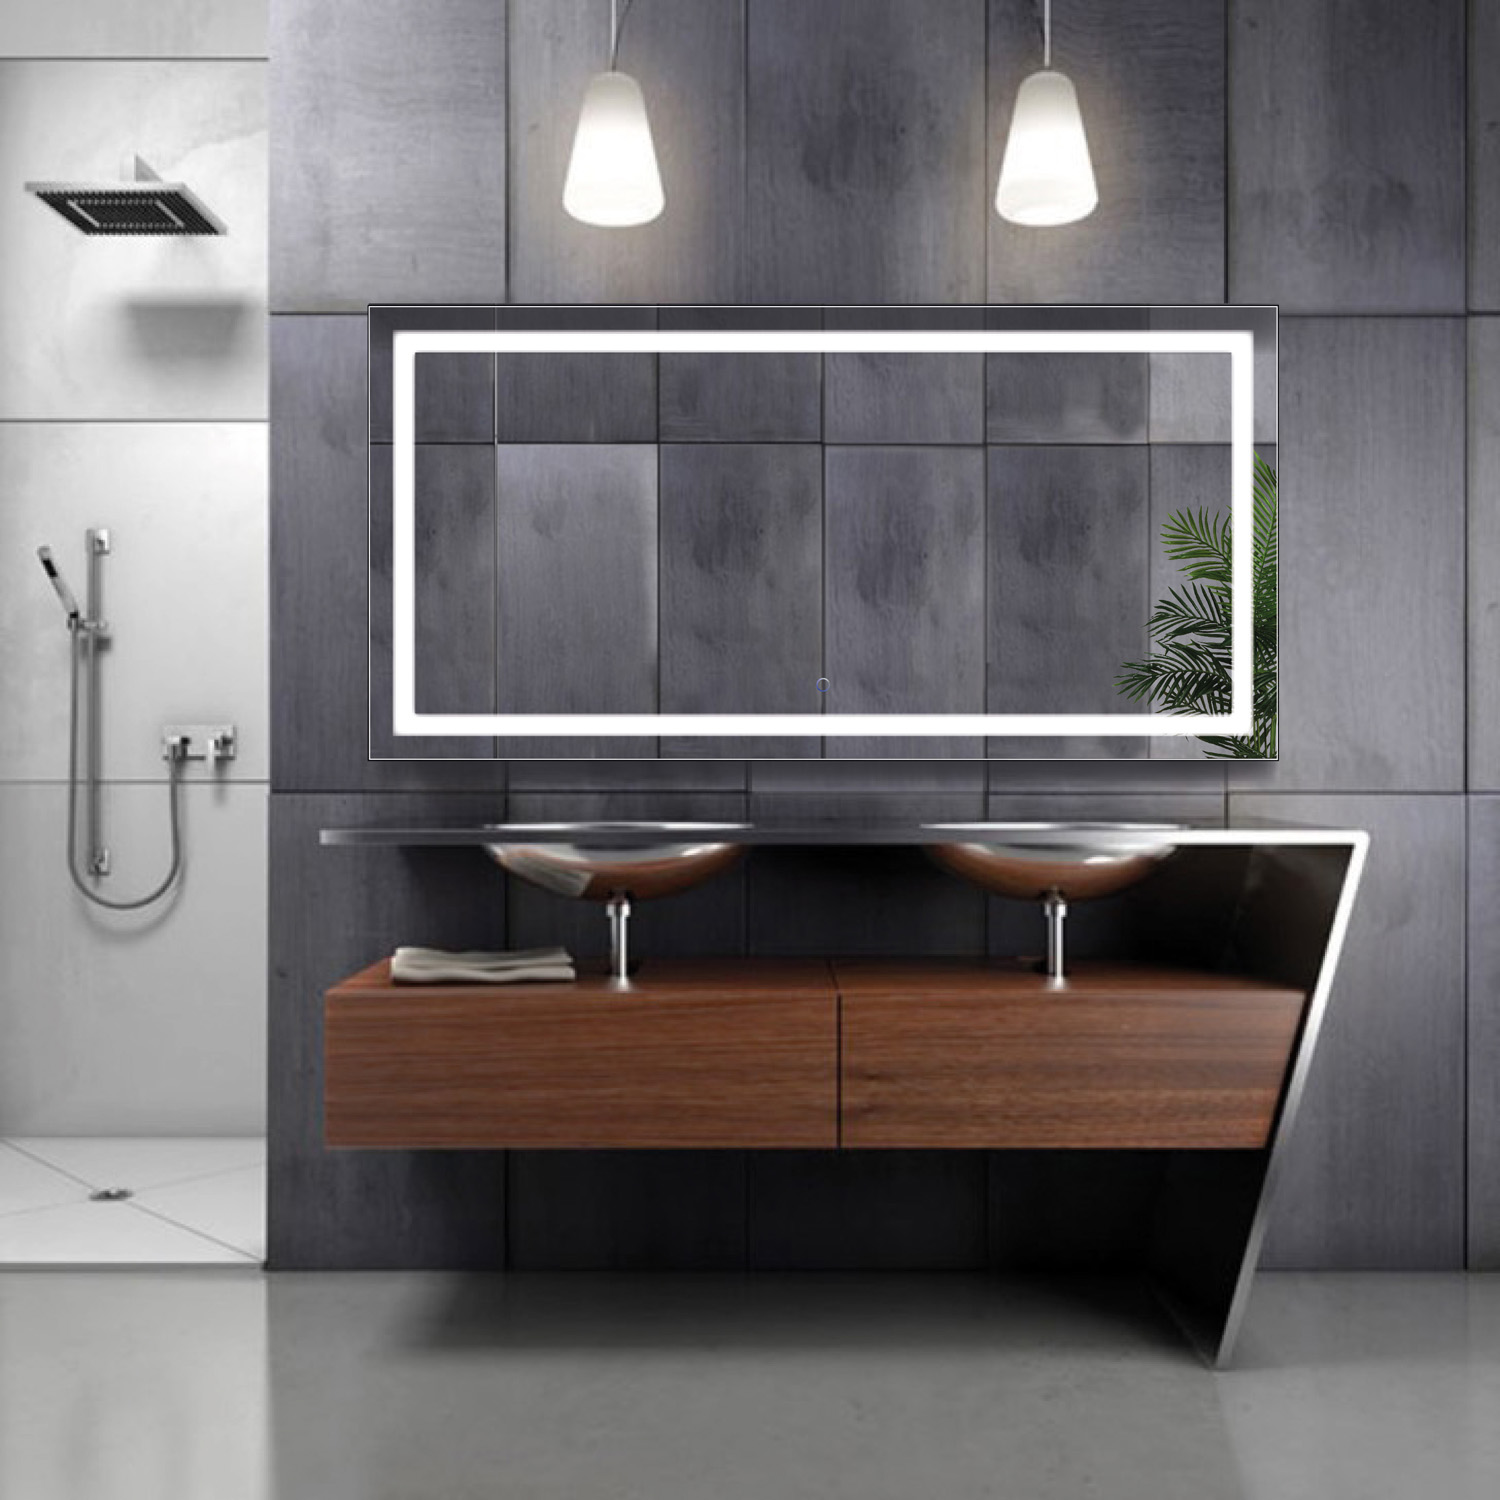 Bathroom Mirrors 60 X 30 large 60 inch x 30 inch led bathroom mirror lighted vanity mirror